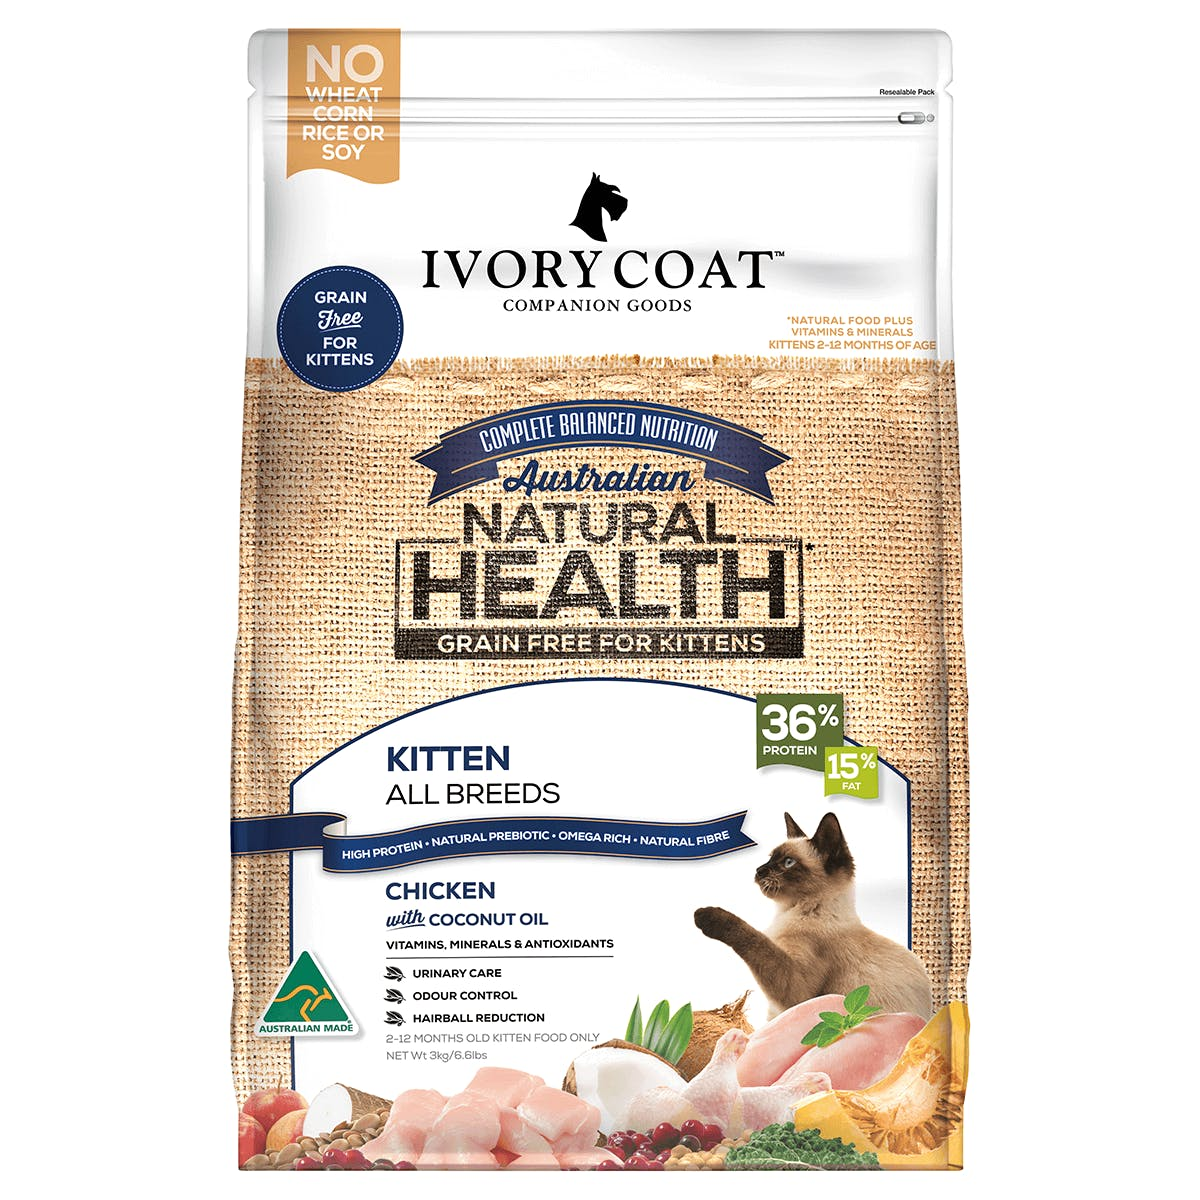 Ivory Coat | Chicken with Coconut Oil | Grain-free dry cat foods | Front of pack